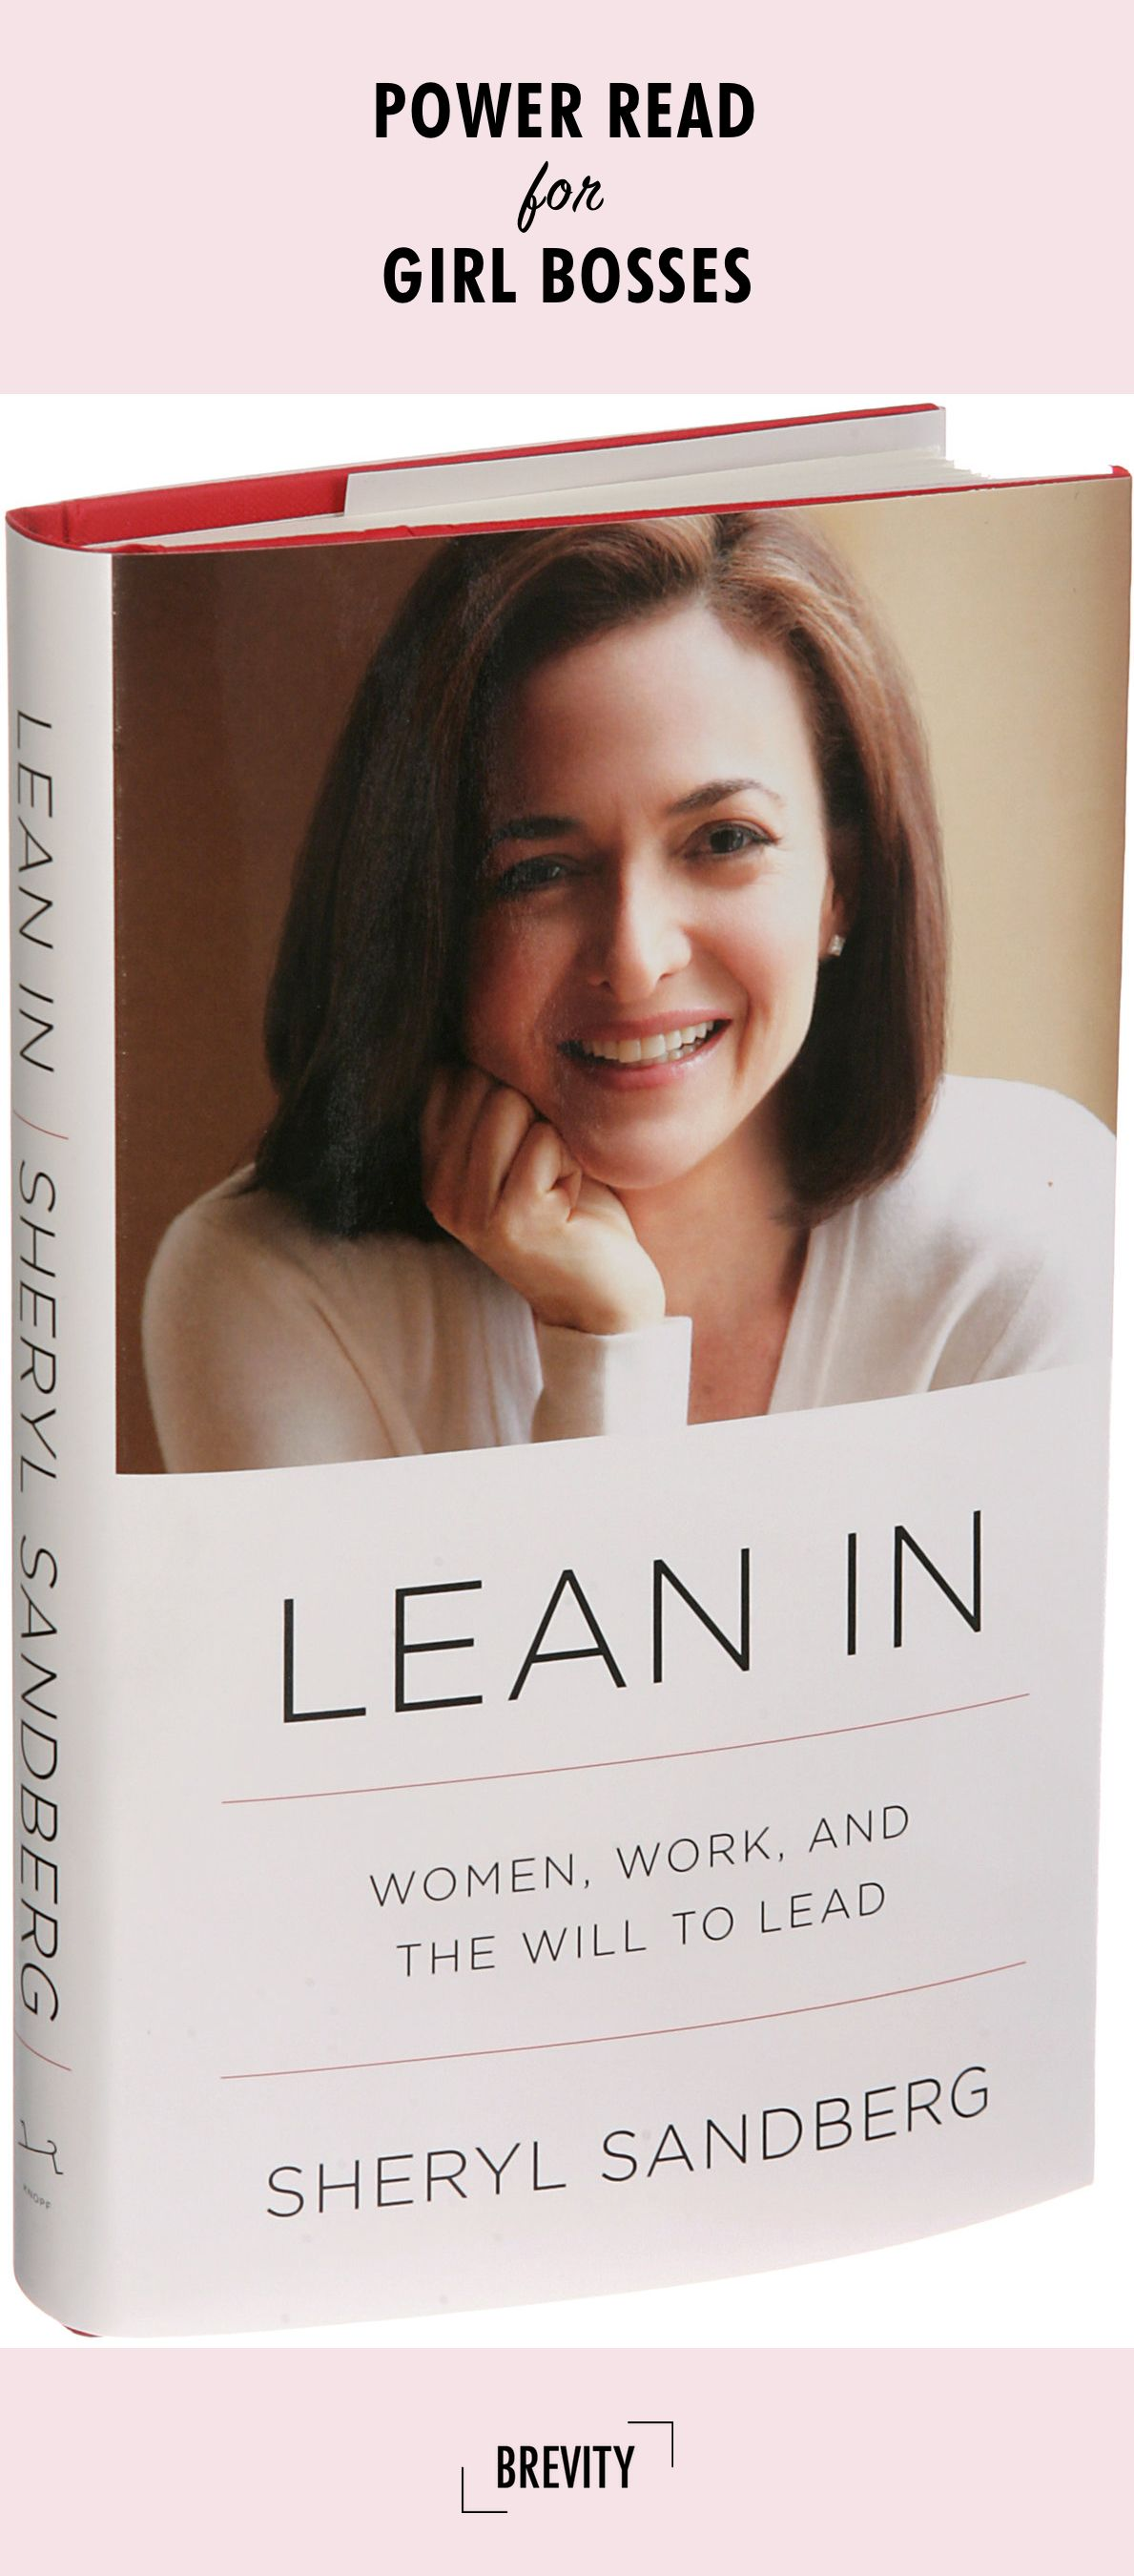 LEAN IN BOOK SHERYL SANDBERG EPUB DOWNLOAD